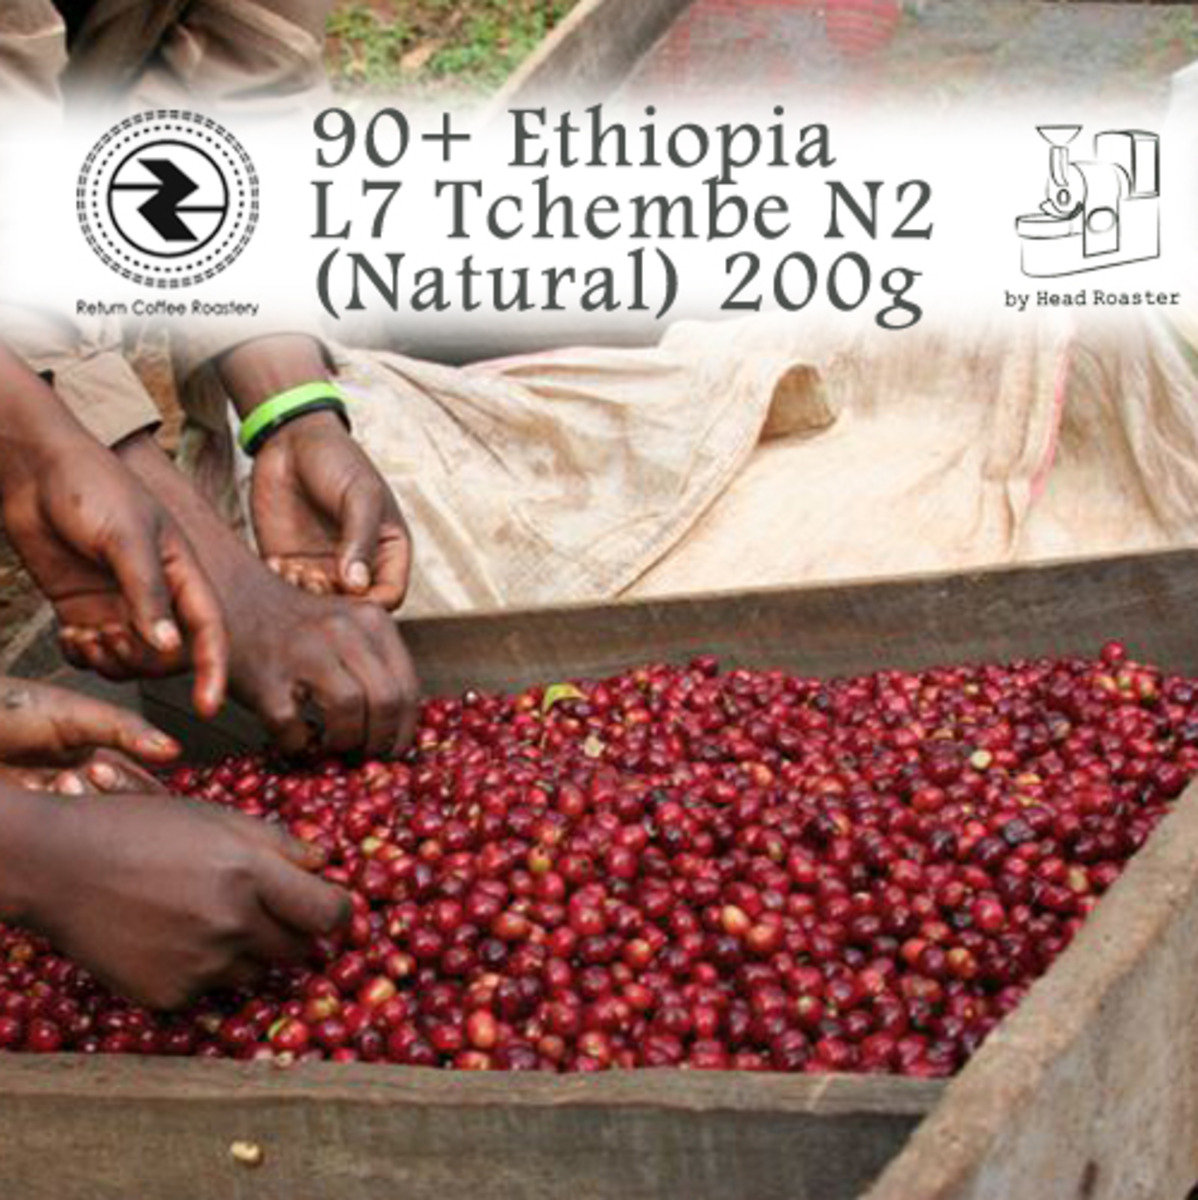 L7 Tchembe N2 (Natural) by Head Roaster